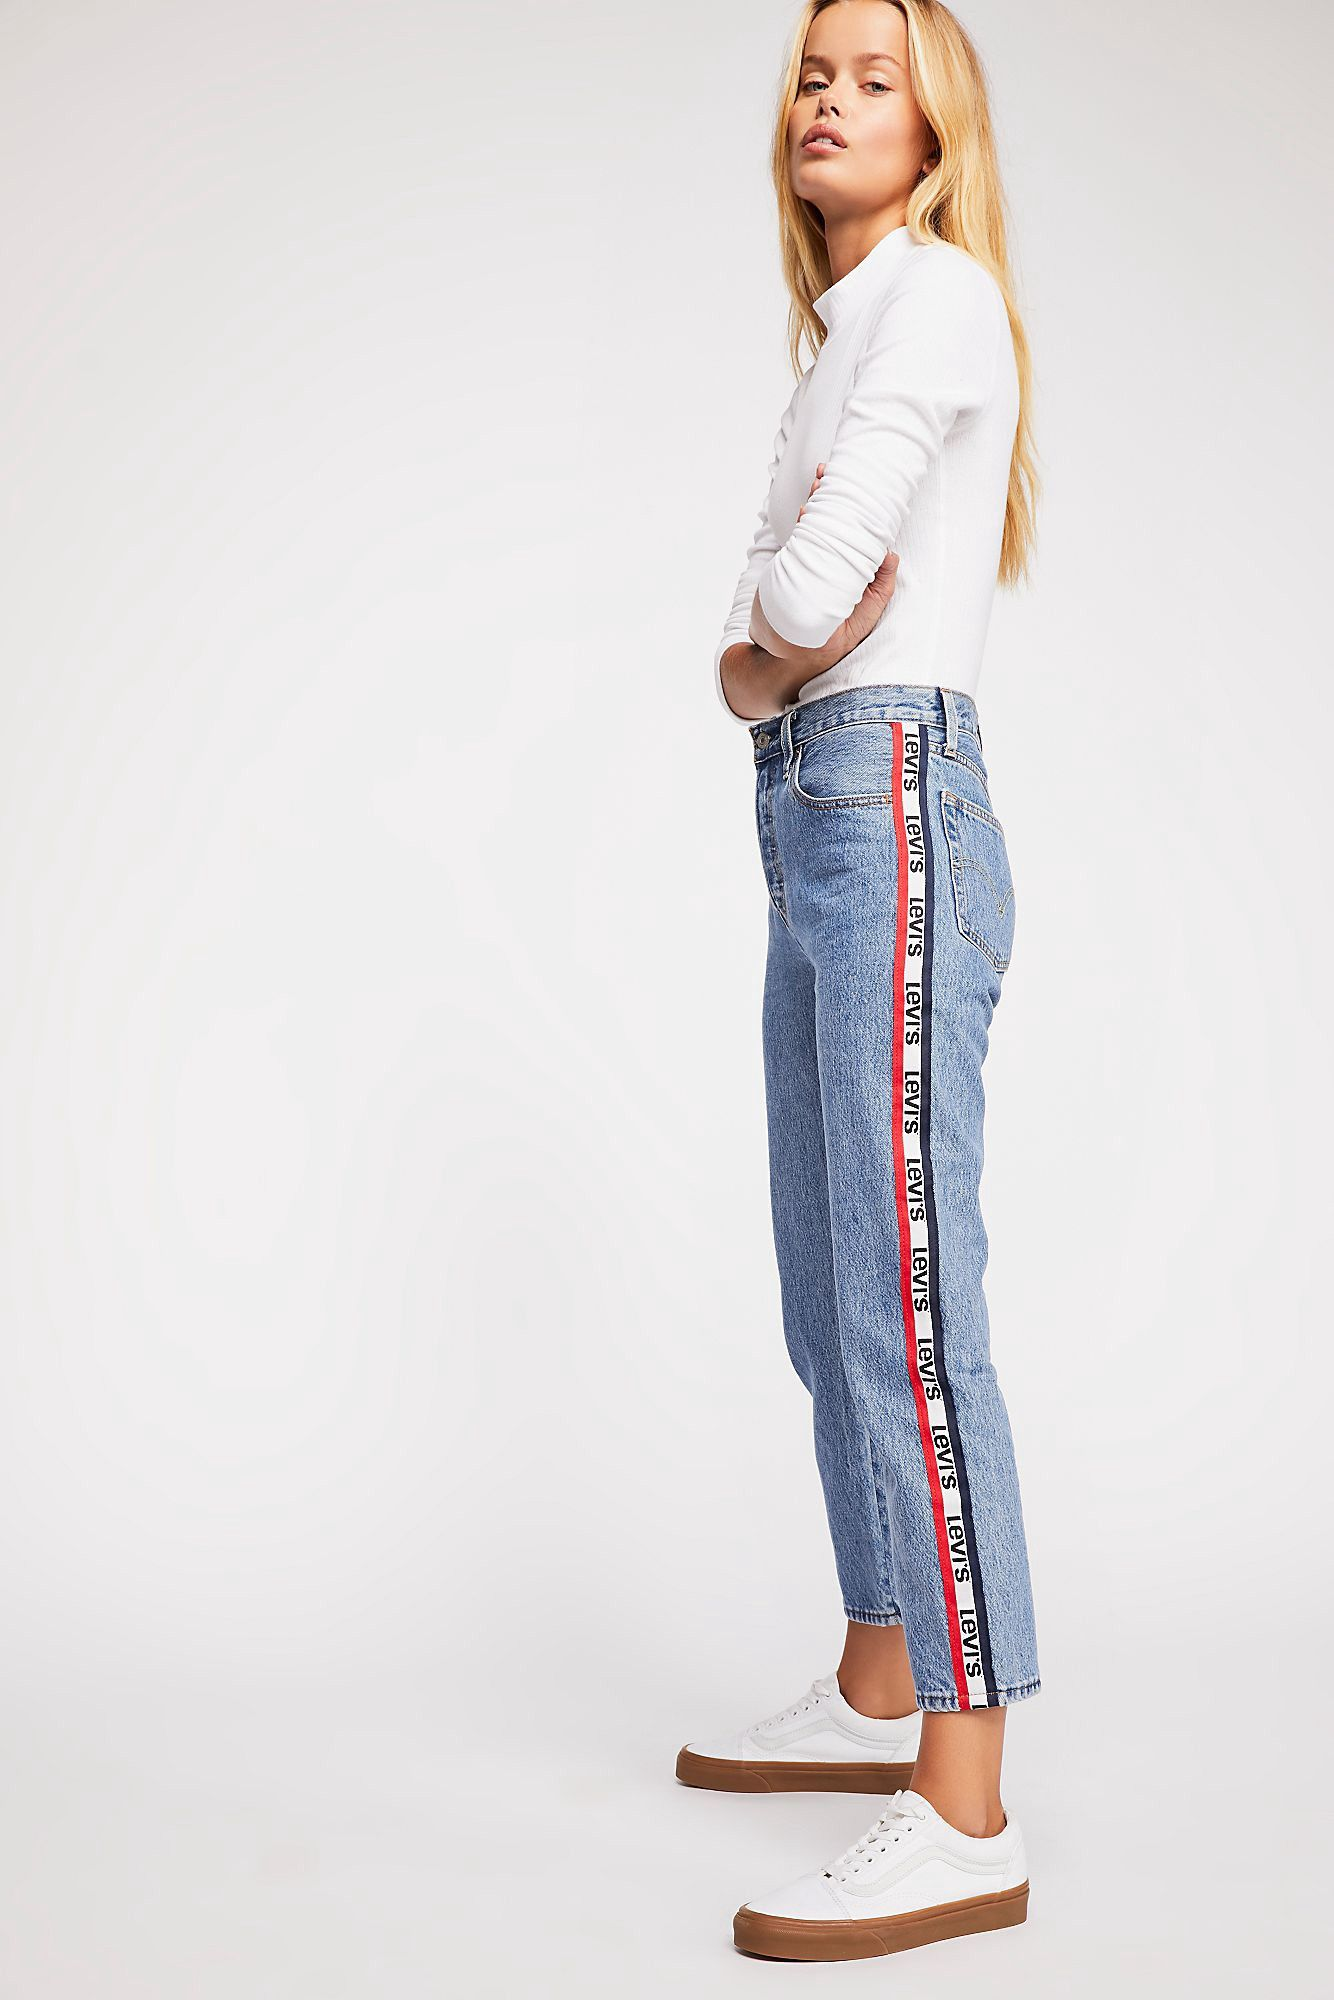 0169343b Free People Levi's 501 Crop Jeans - Bonafide 25   Products   Cropped ...